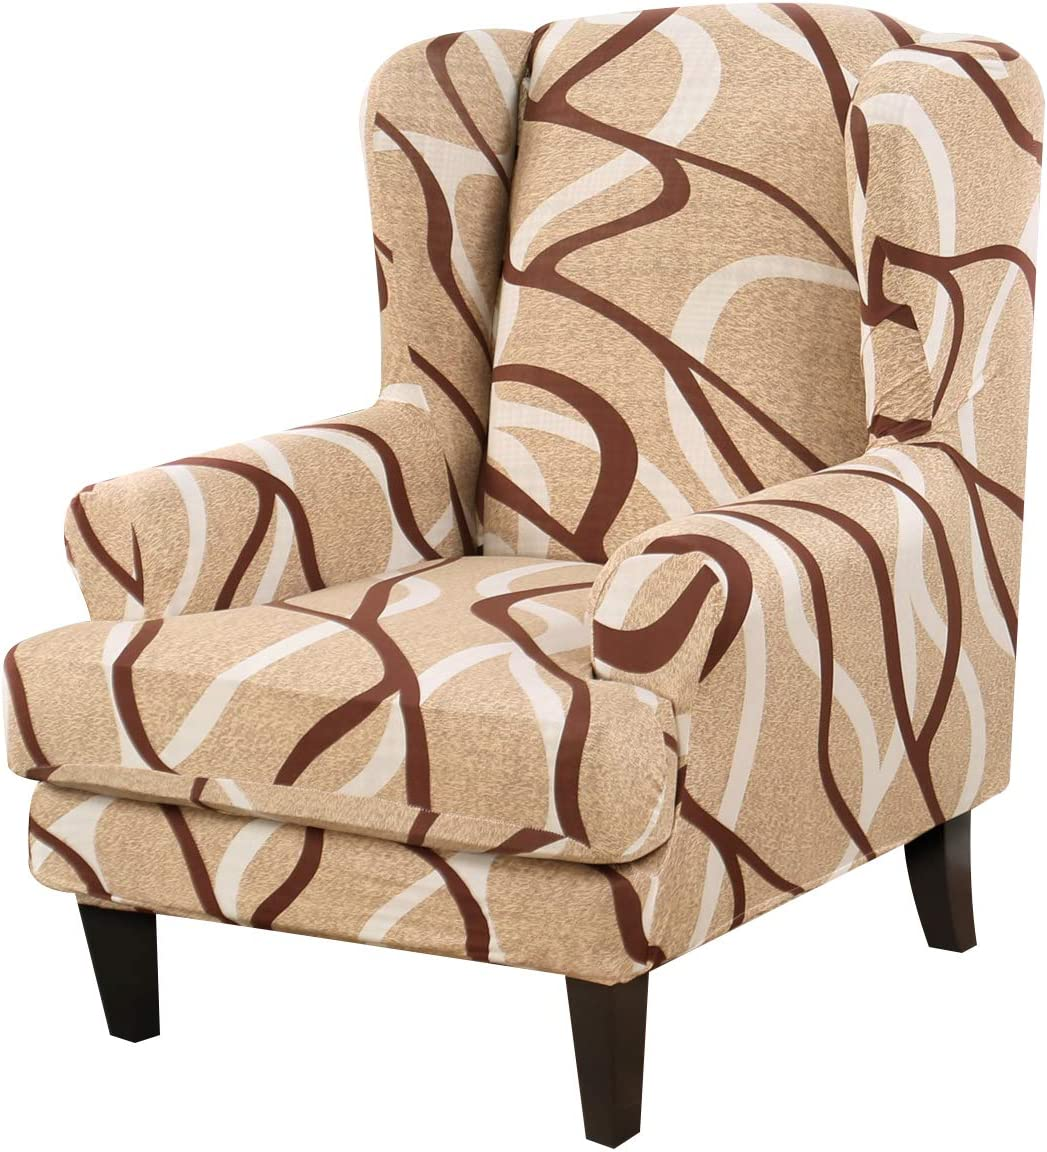 Wing Chair Slipcovers 2-Piece online shopping Covers Sofa OFFicial store Pattern Wingback